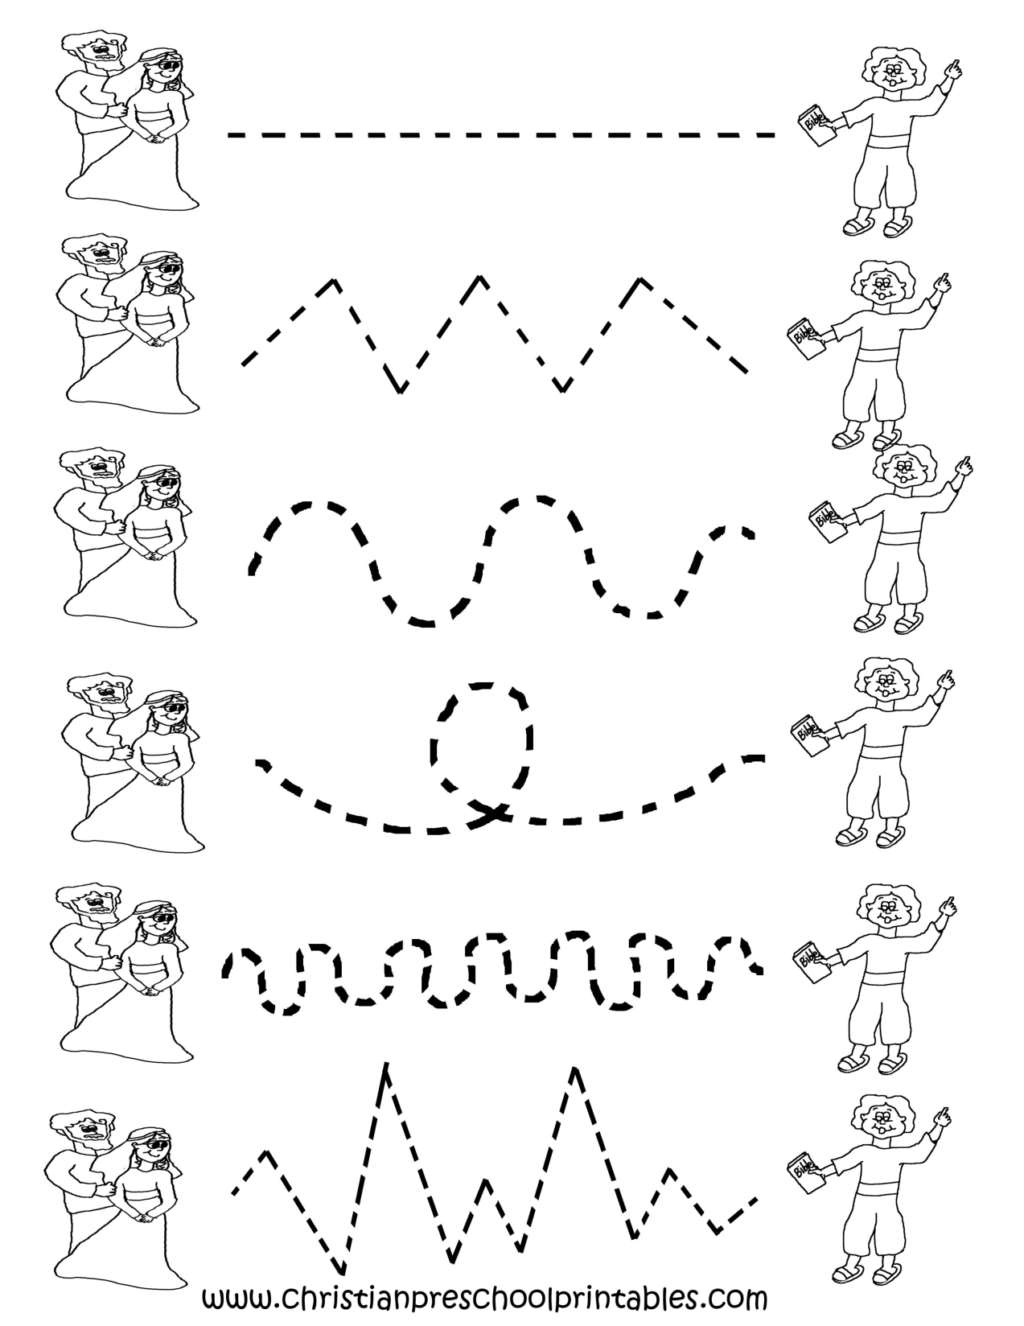 Tracing Lines Worksheets Todddlers